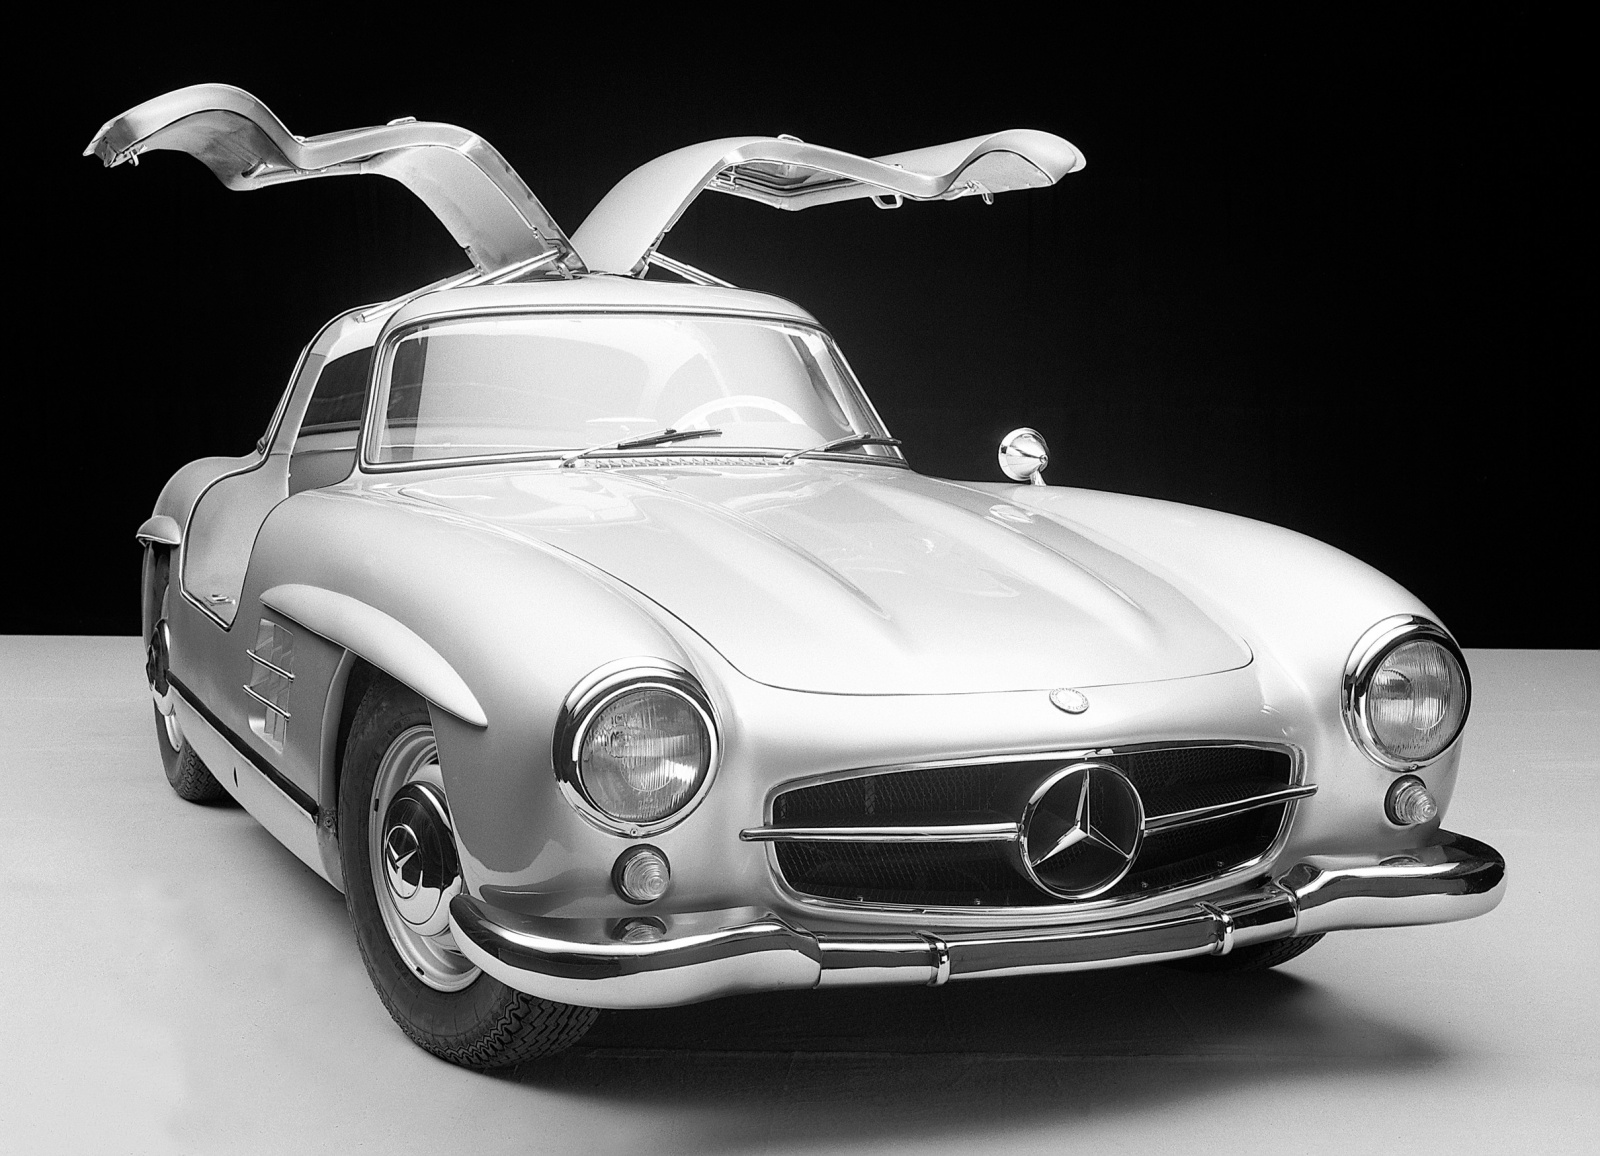 Mercedes-Benz W198 300SL Gullwing For Sale USA